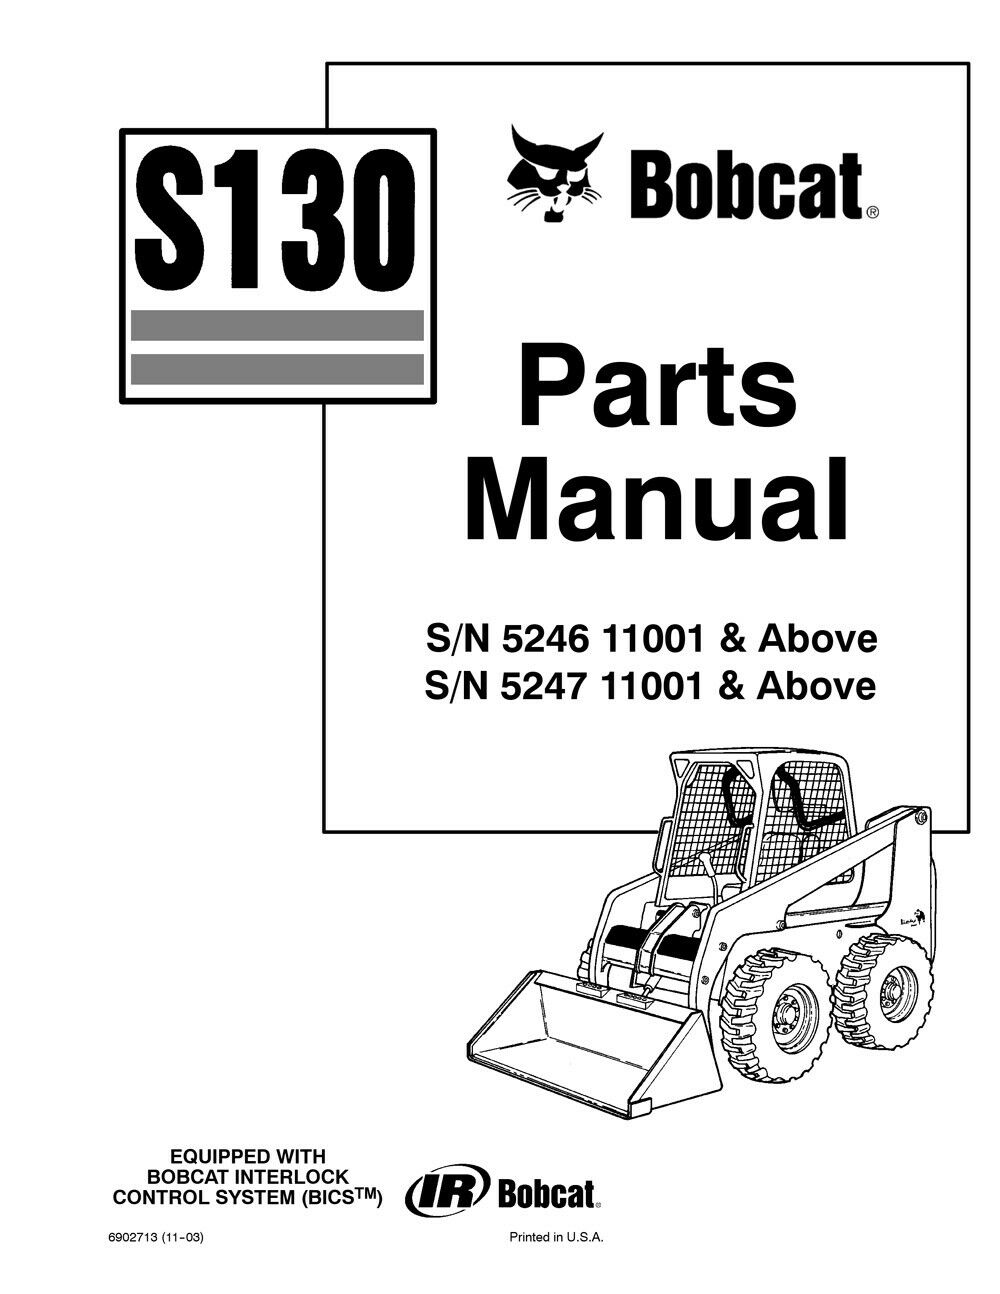 medium resolution of bobcat s130 skid steer loader parts manual 6902713 ebay rh ebay com bobcat s130 parts manual free bobcat s130 parts list